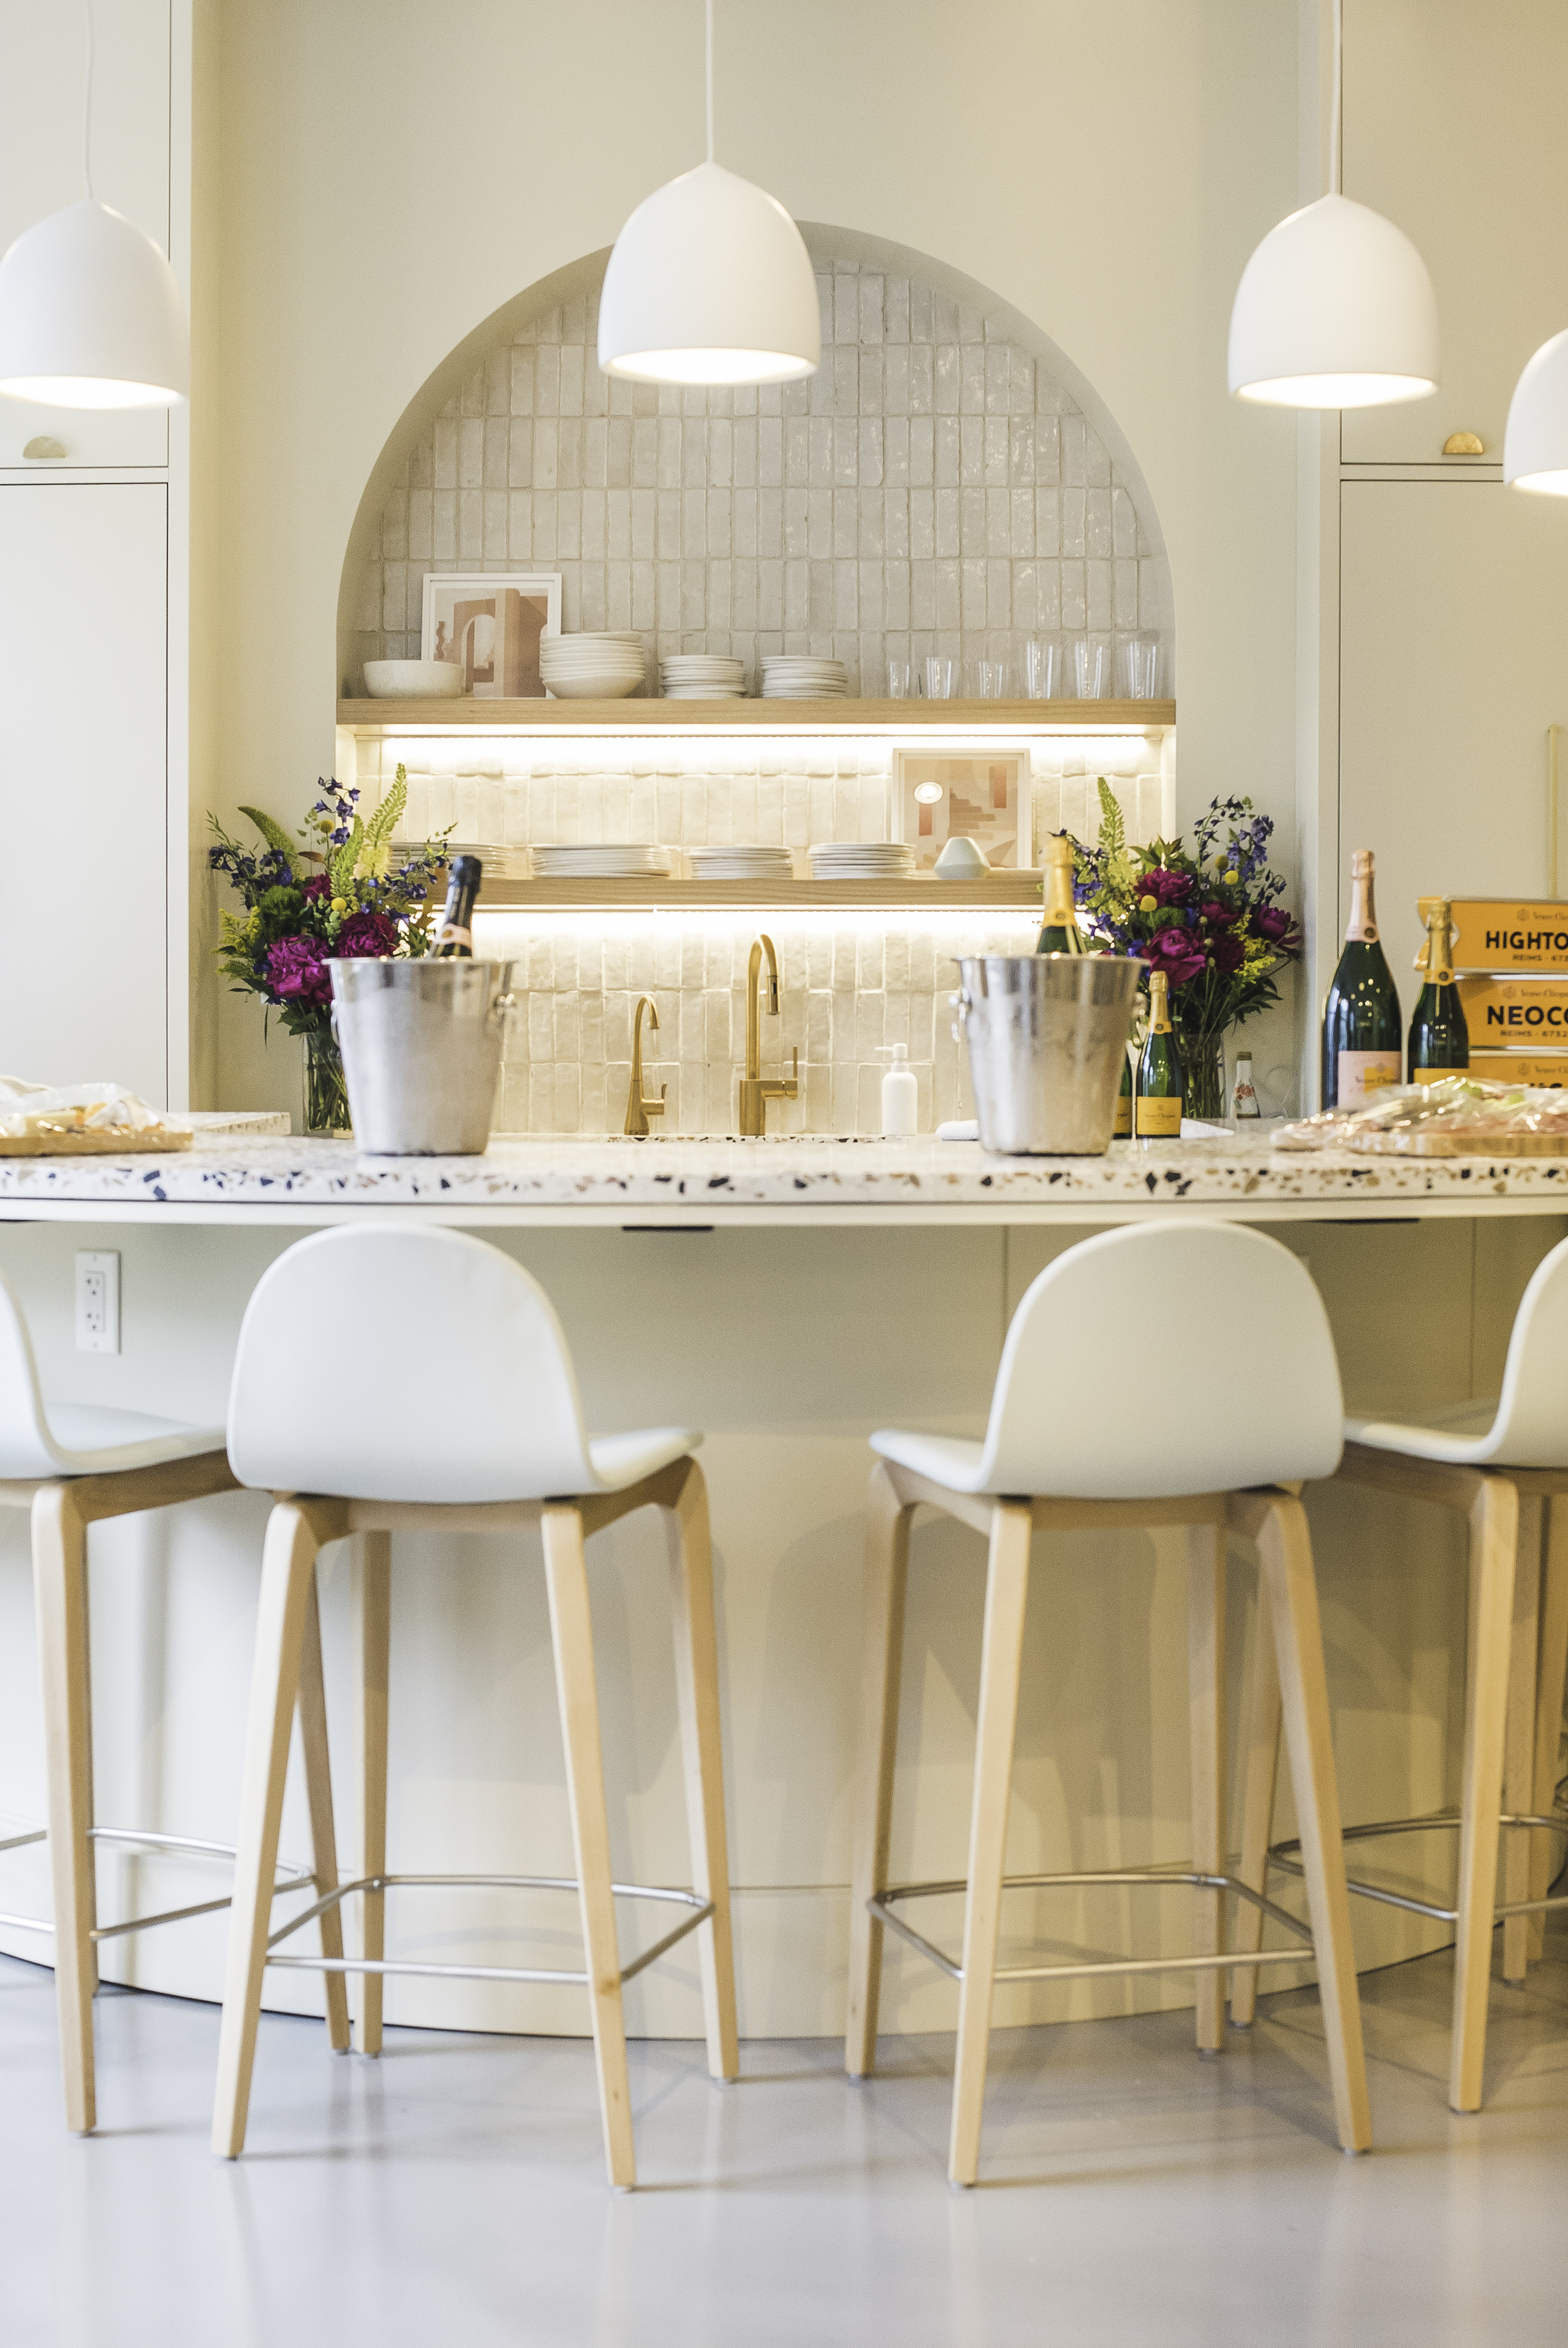 Image of Hightower's showroom kitchen. The kitchen has a rounded bar and an arched alcove behind the sink. There are barstools around the bar and white pendants above.